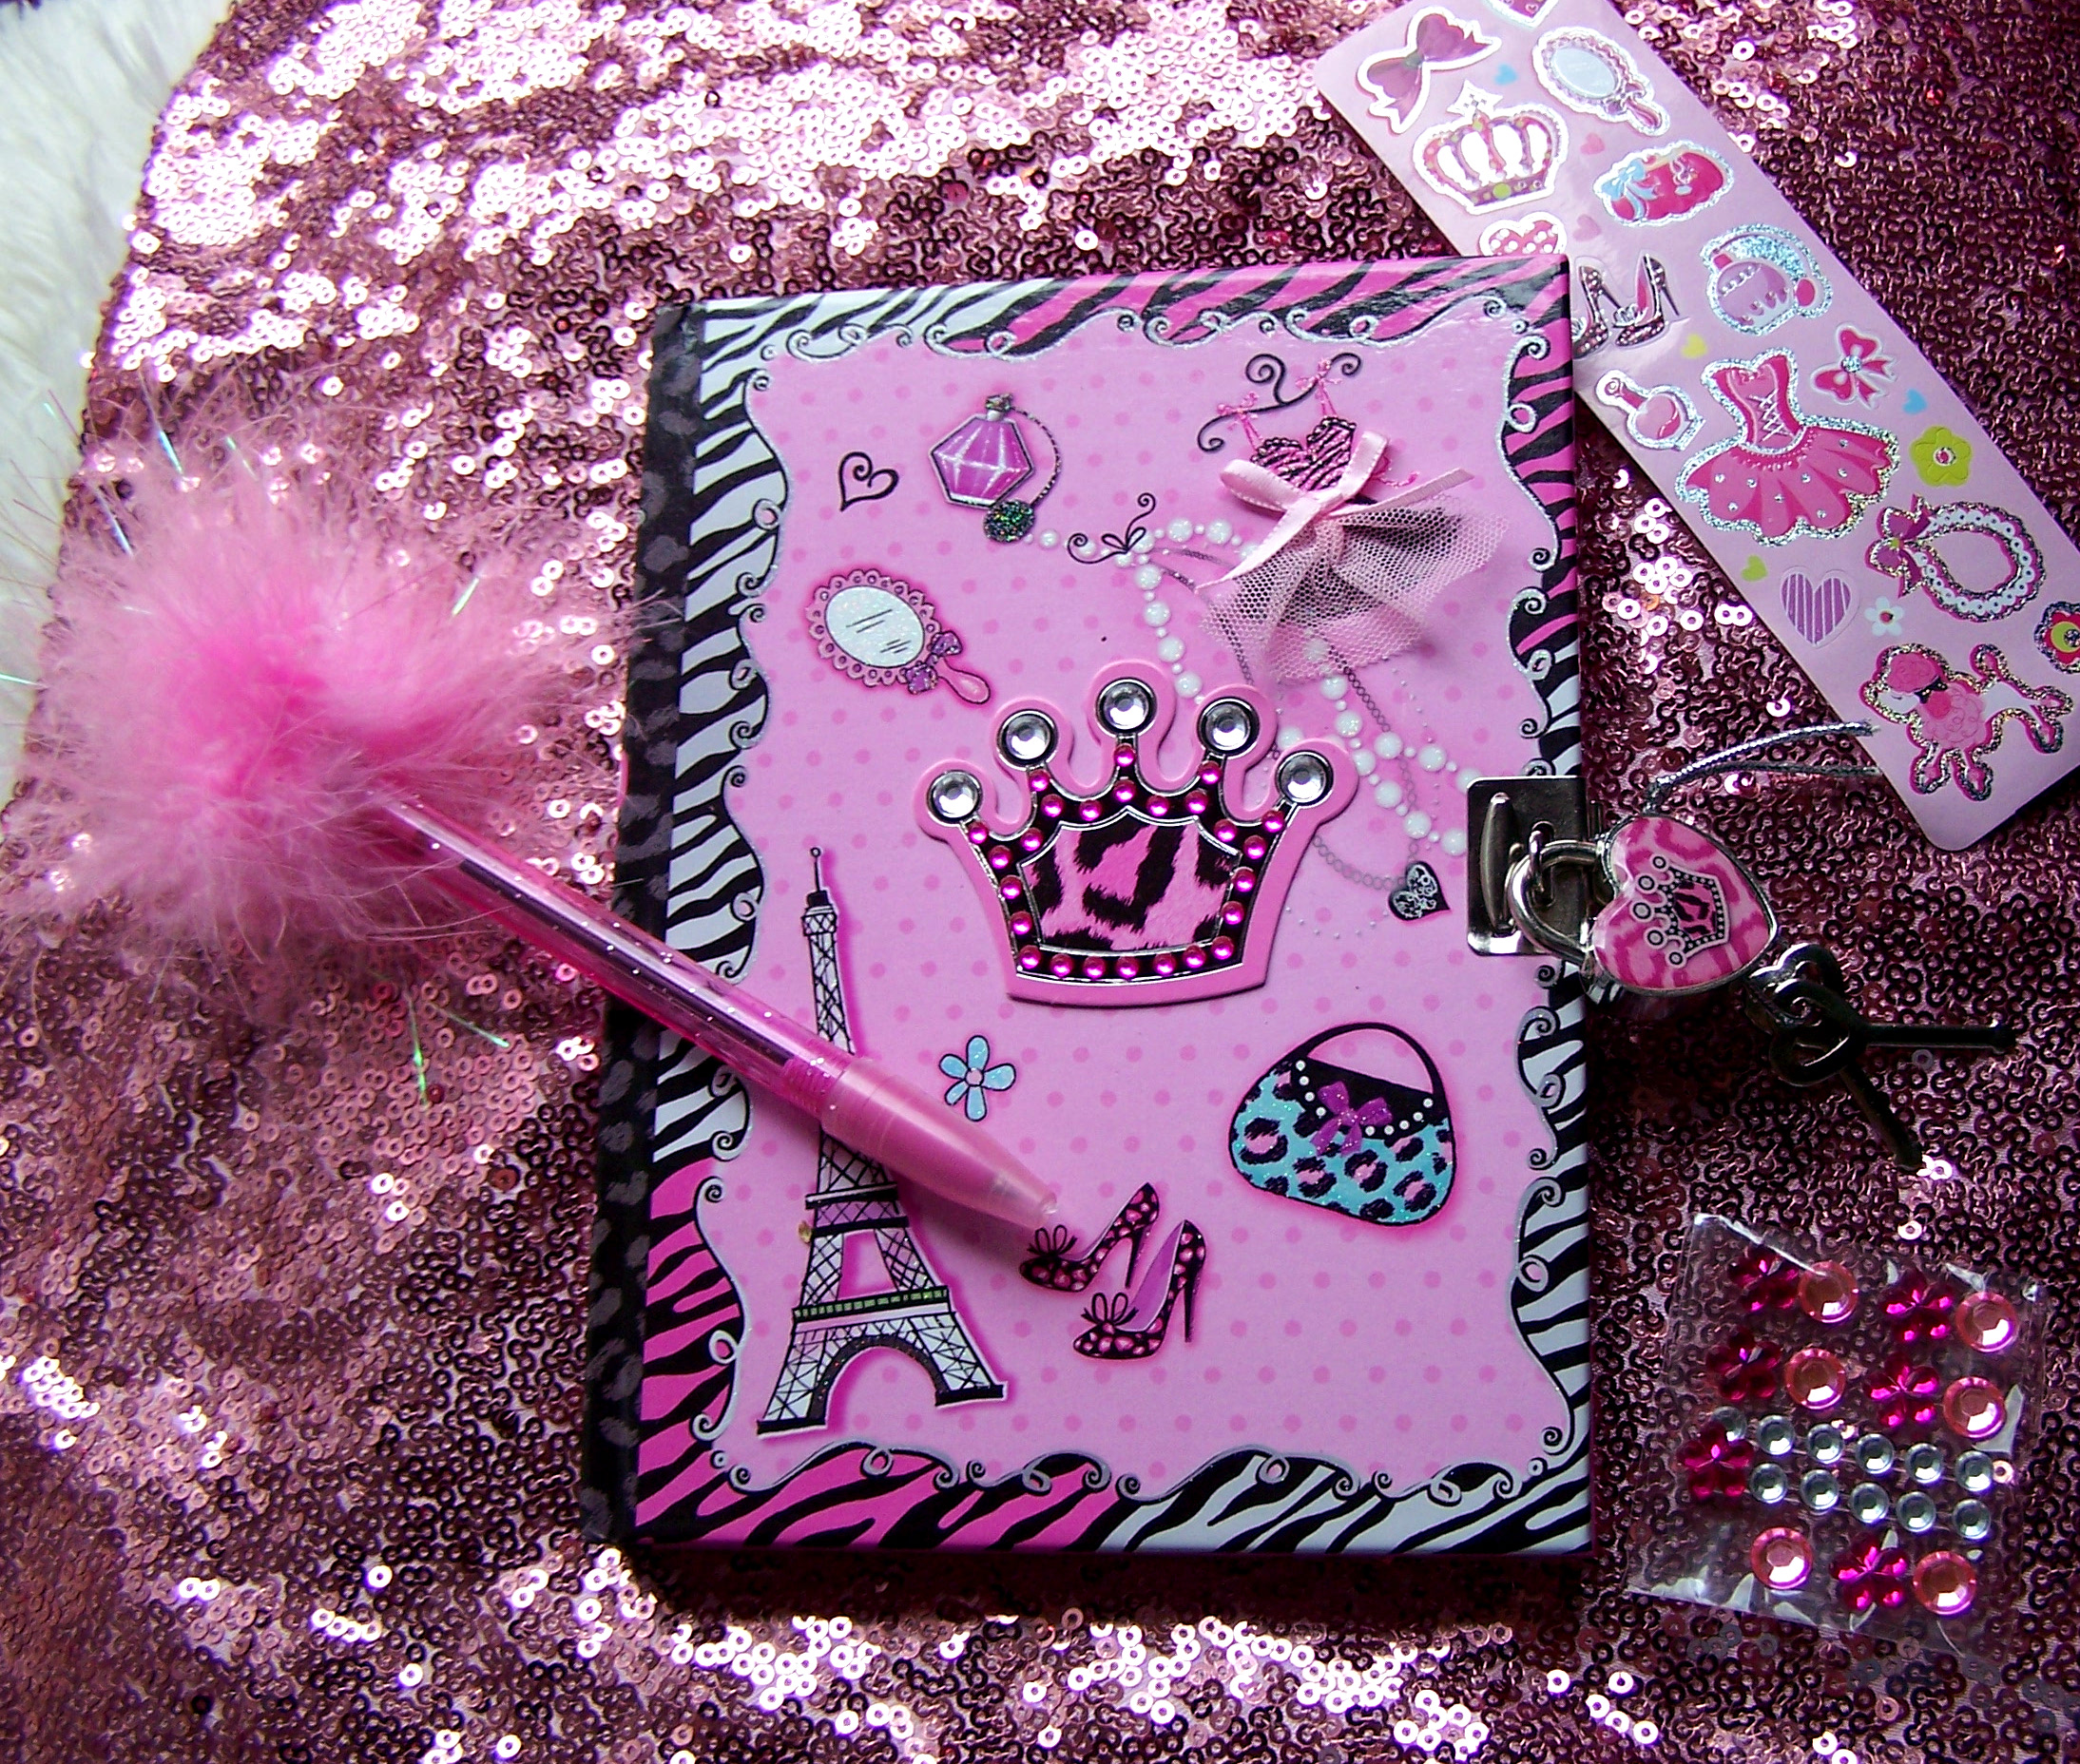 girls locking diary stickers jewel metal foil kids gifts Easter basket Christmas birthdays gifts presents shopping cute sweet France French Paris tower pen lock heart purse crown toy sweet adorable pink zebra feathered pen